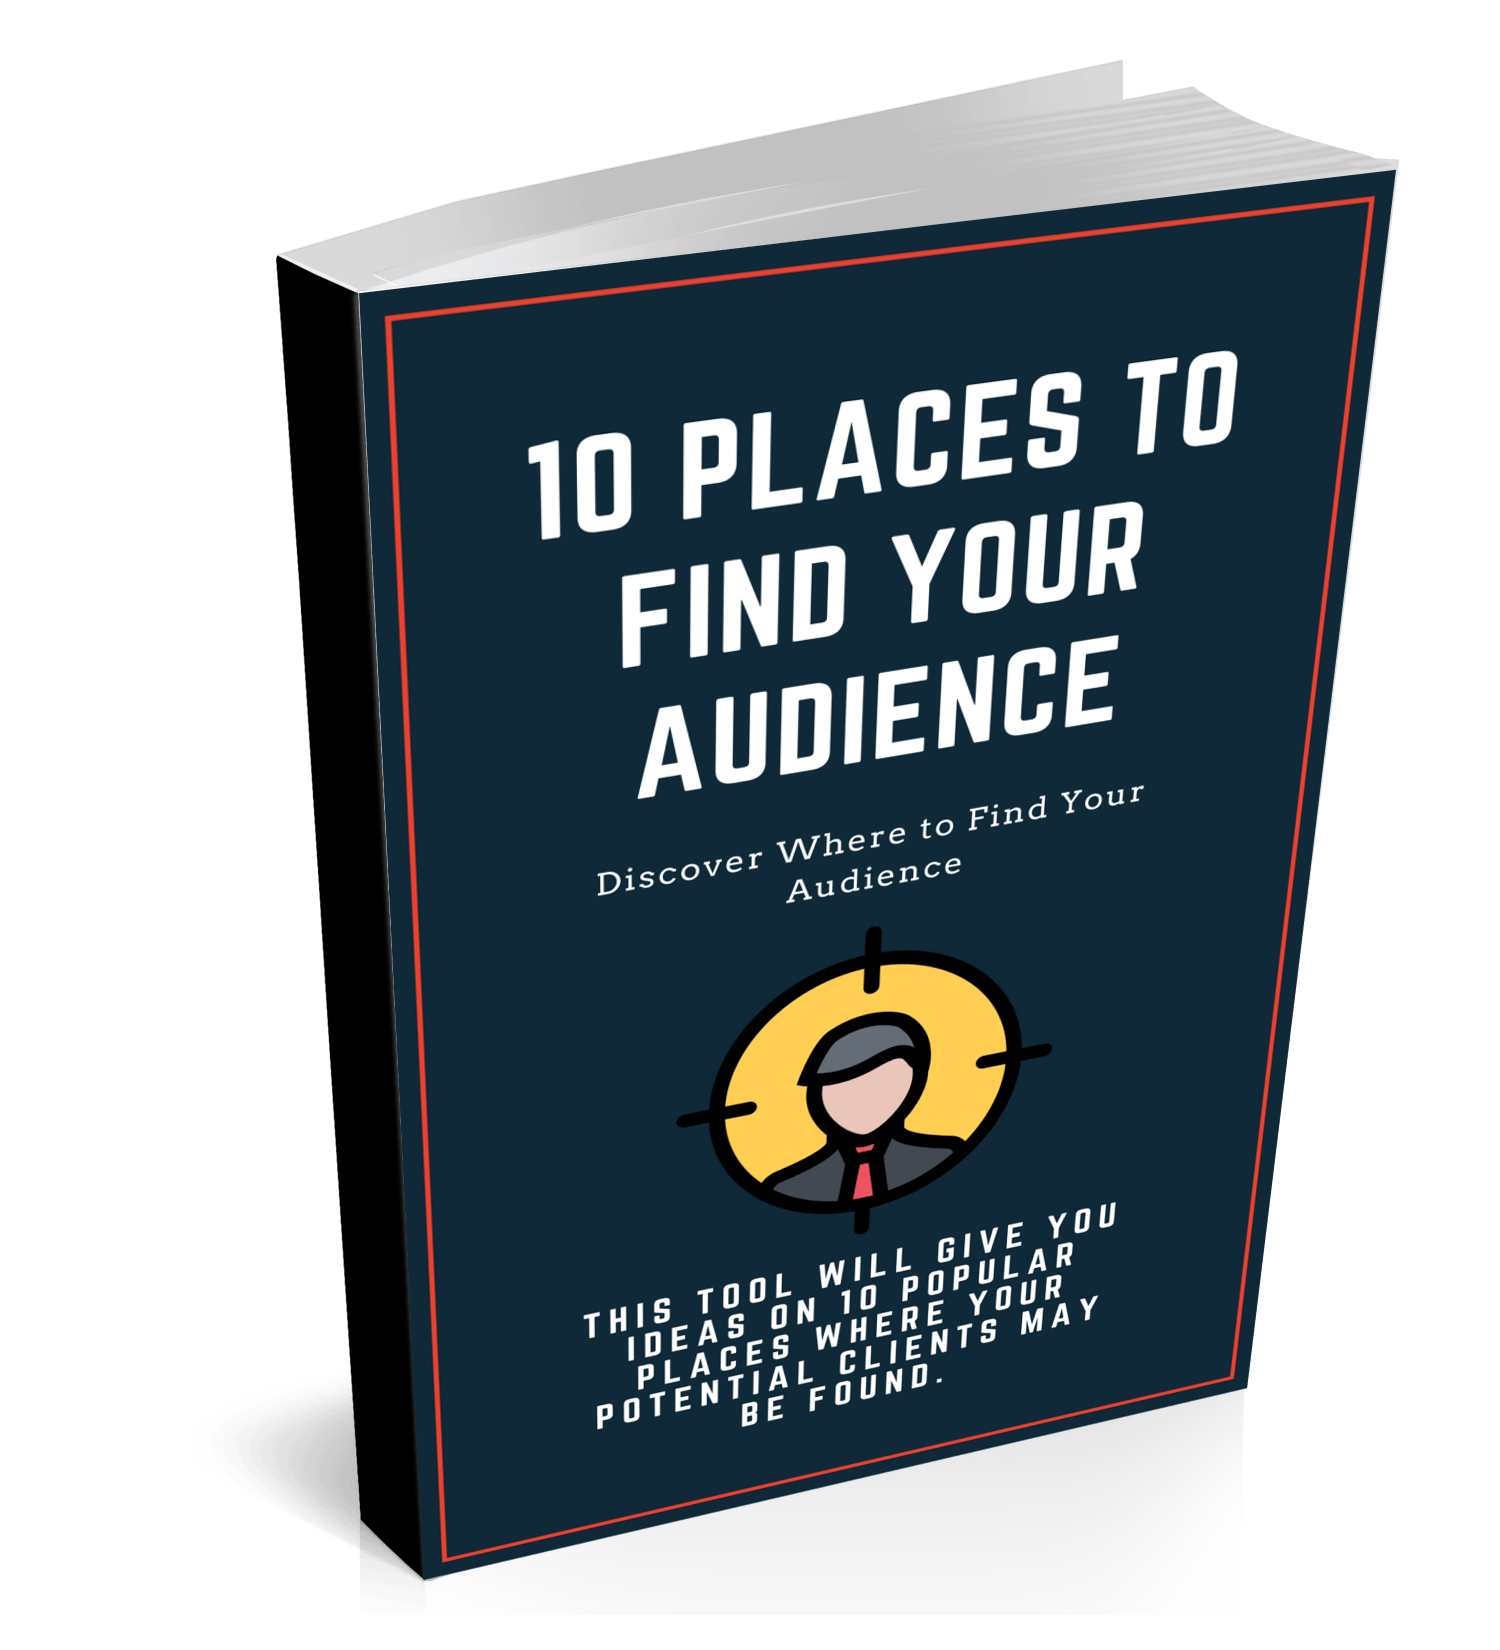 10 places to find customers